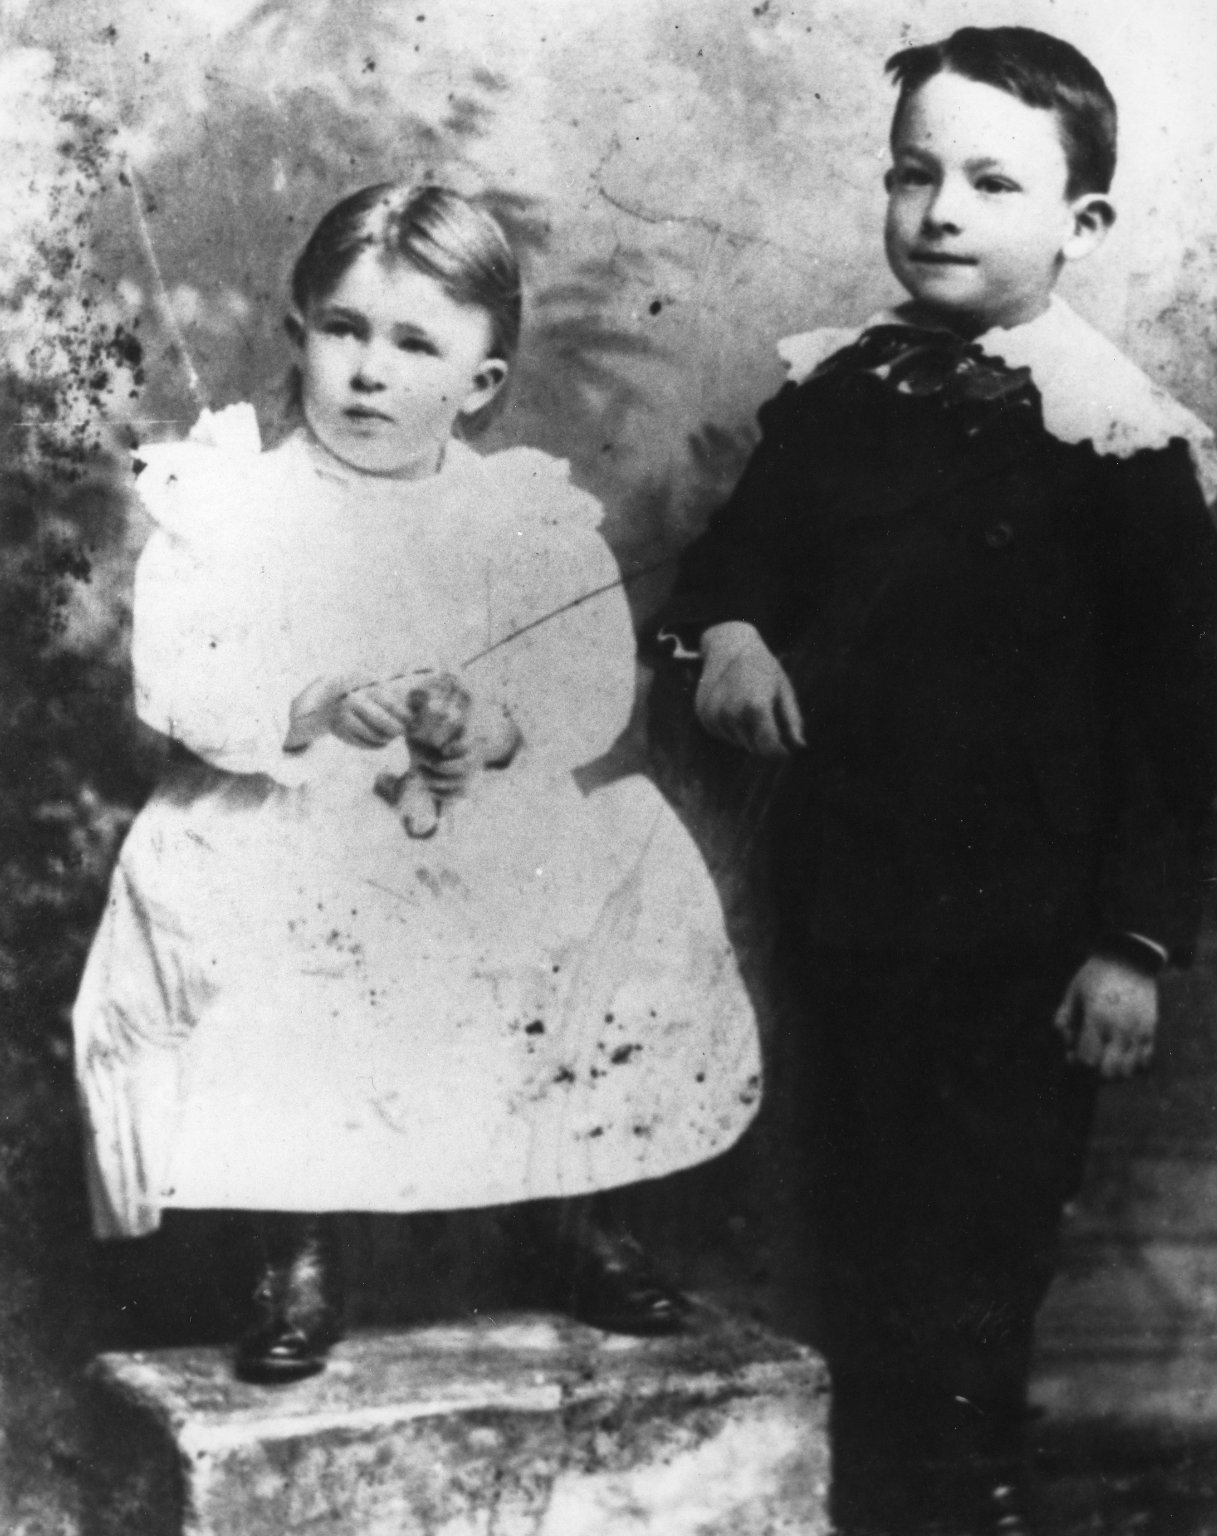 Ruth and Robert Underhill as ChilDr.en